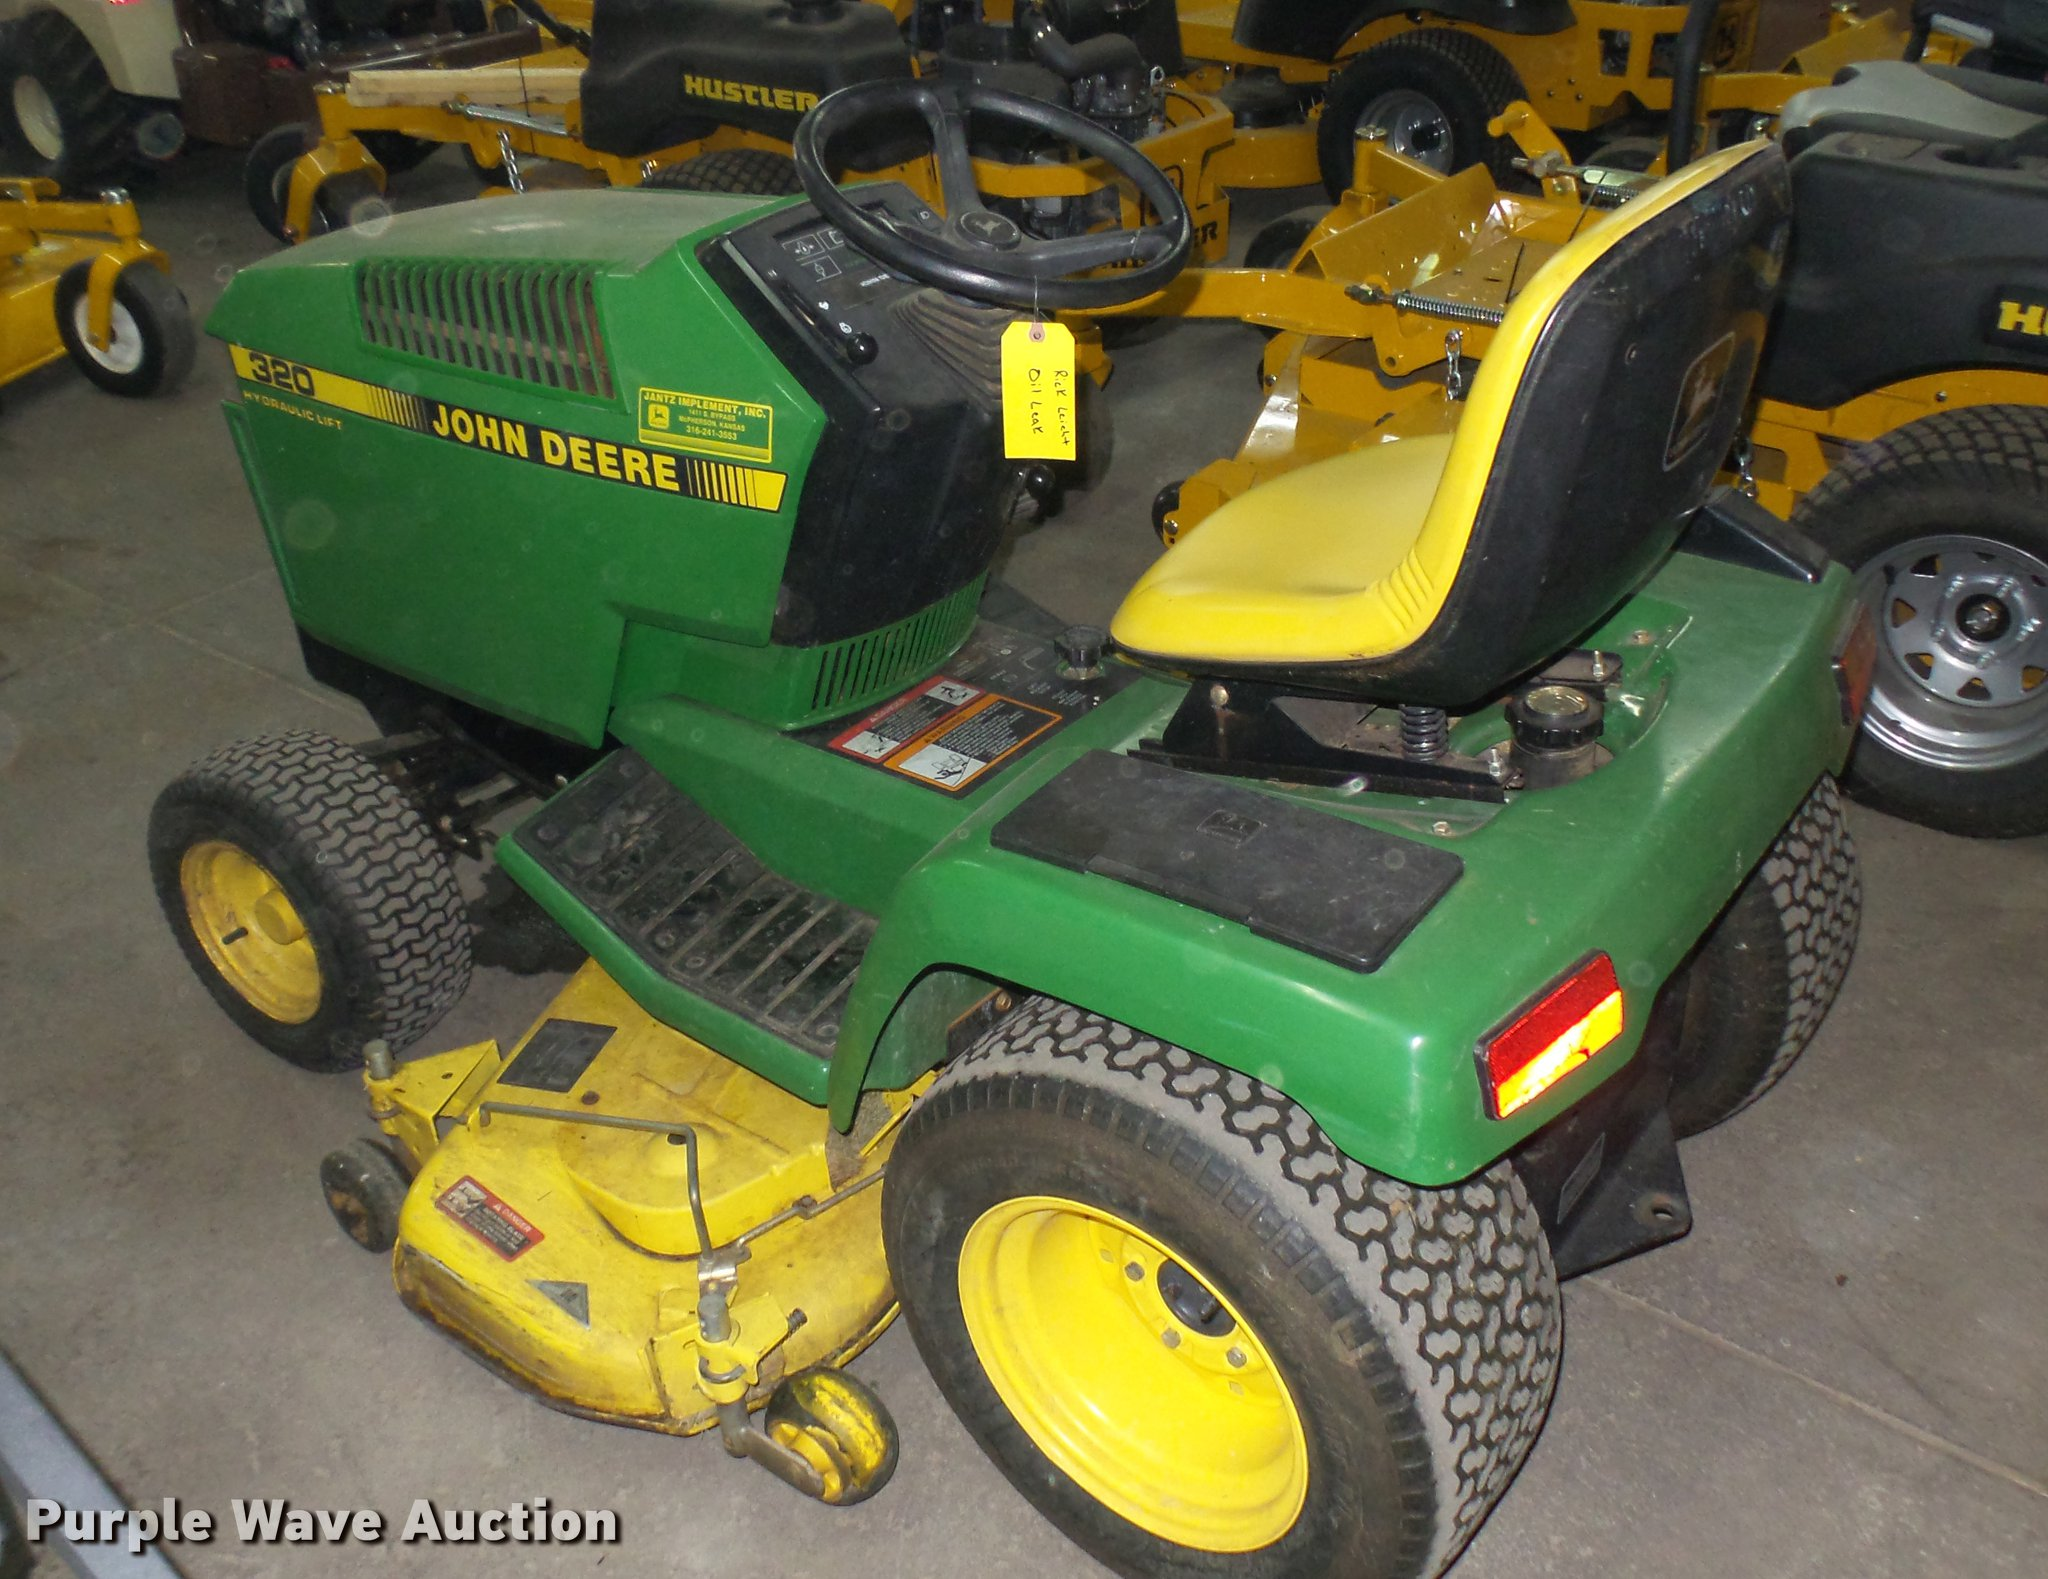 John Deere 320 lawn mower | Item ED9005 | SOLD! November 29